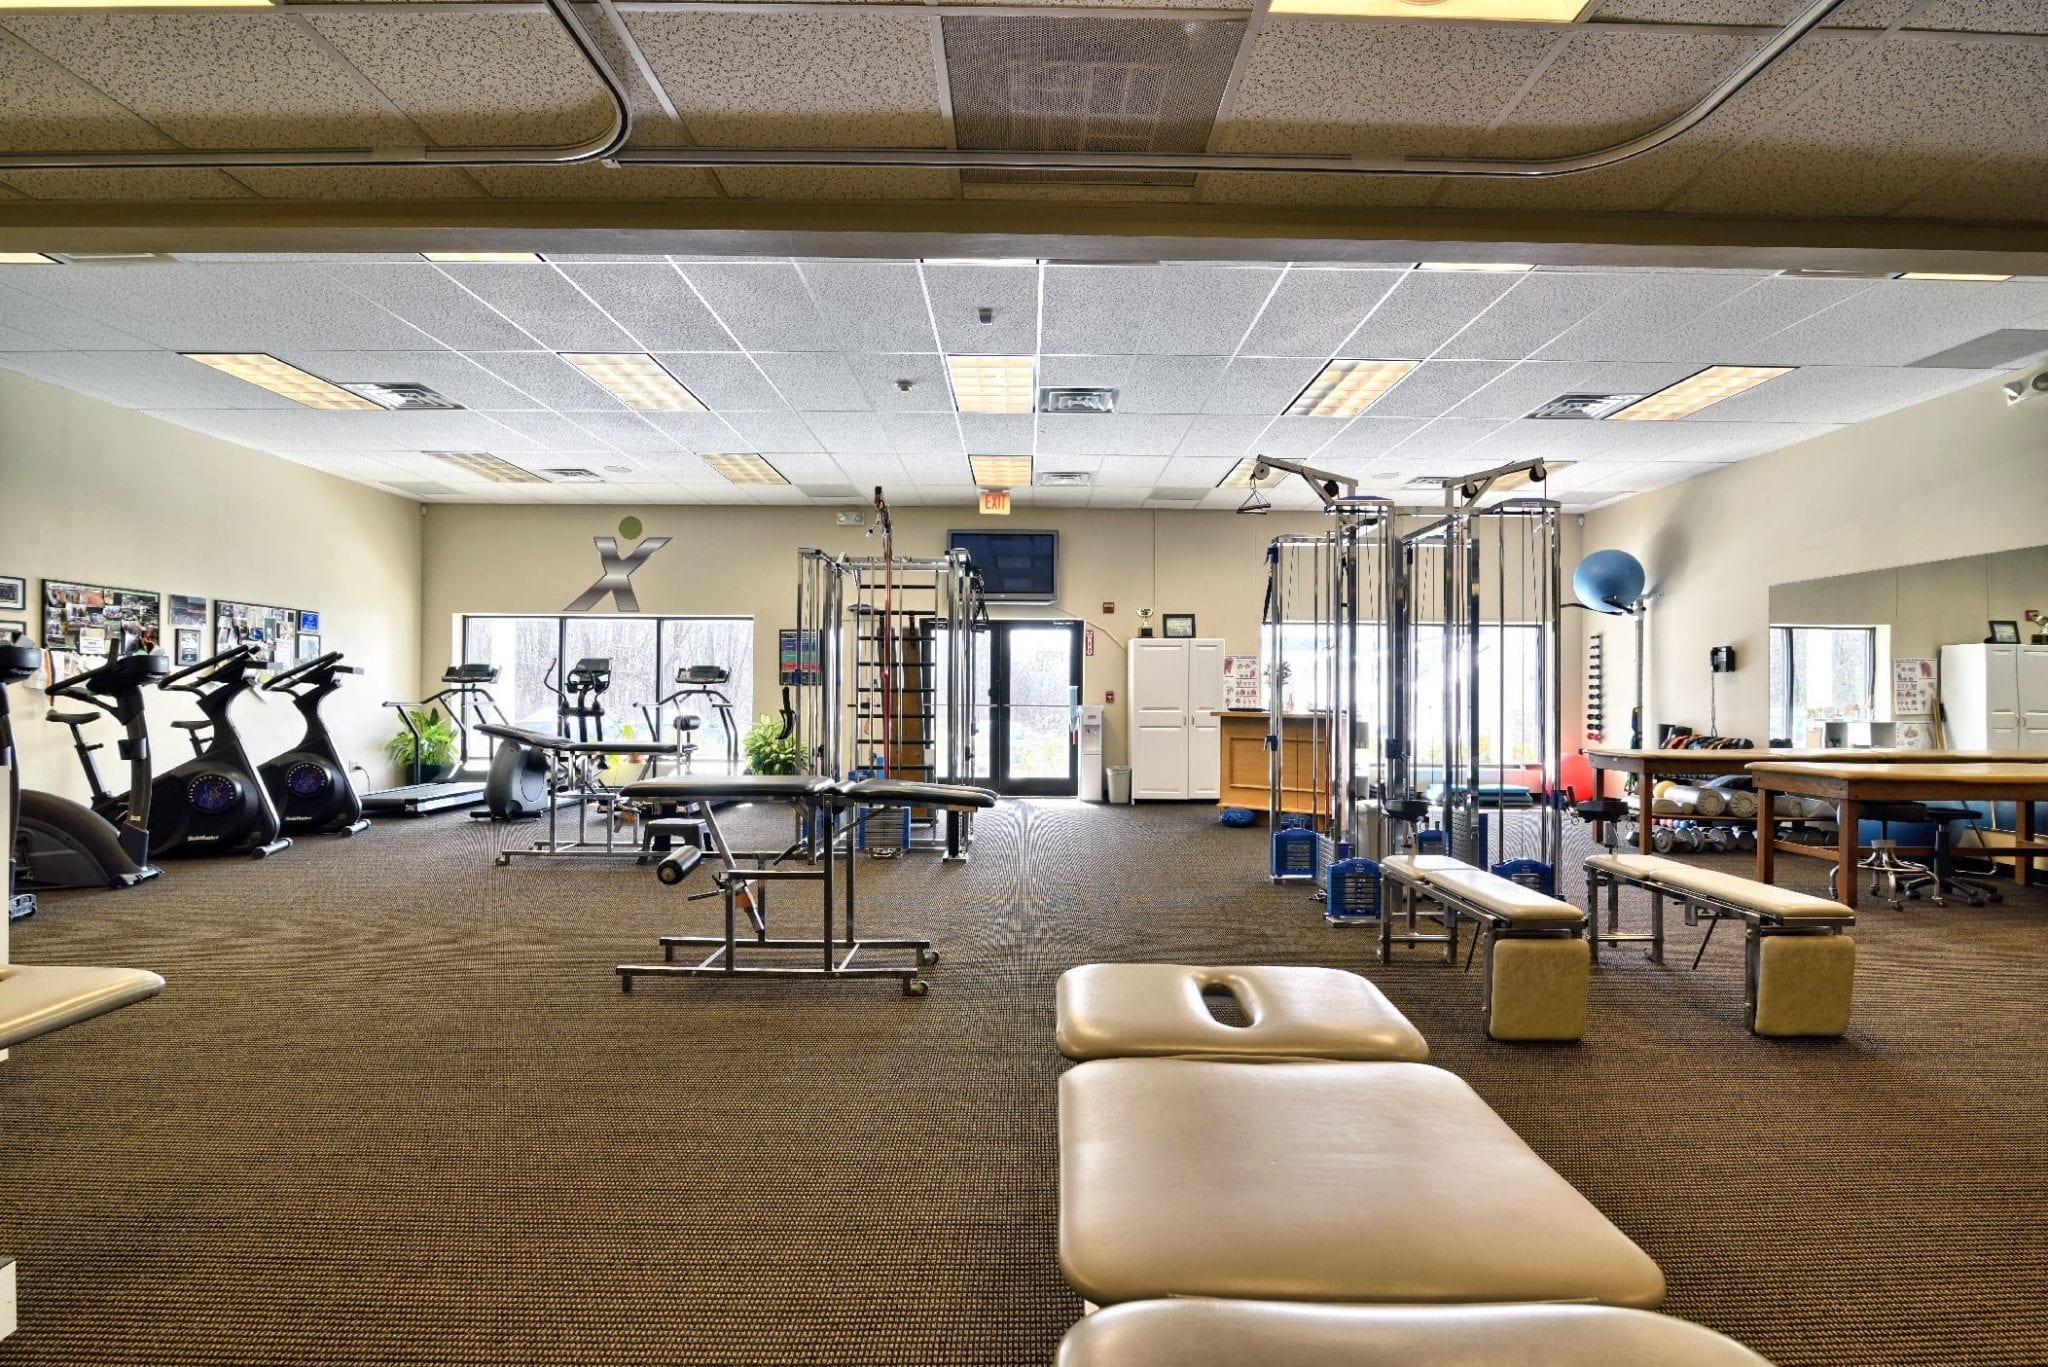 This is an image of some of the equipment that is used at our physical therapy clinic in Stratham, New Hampshire.